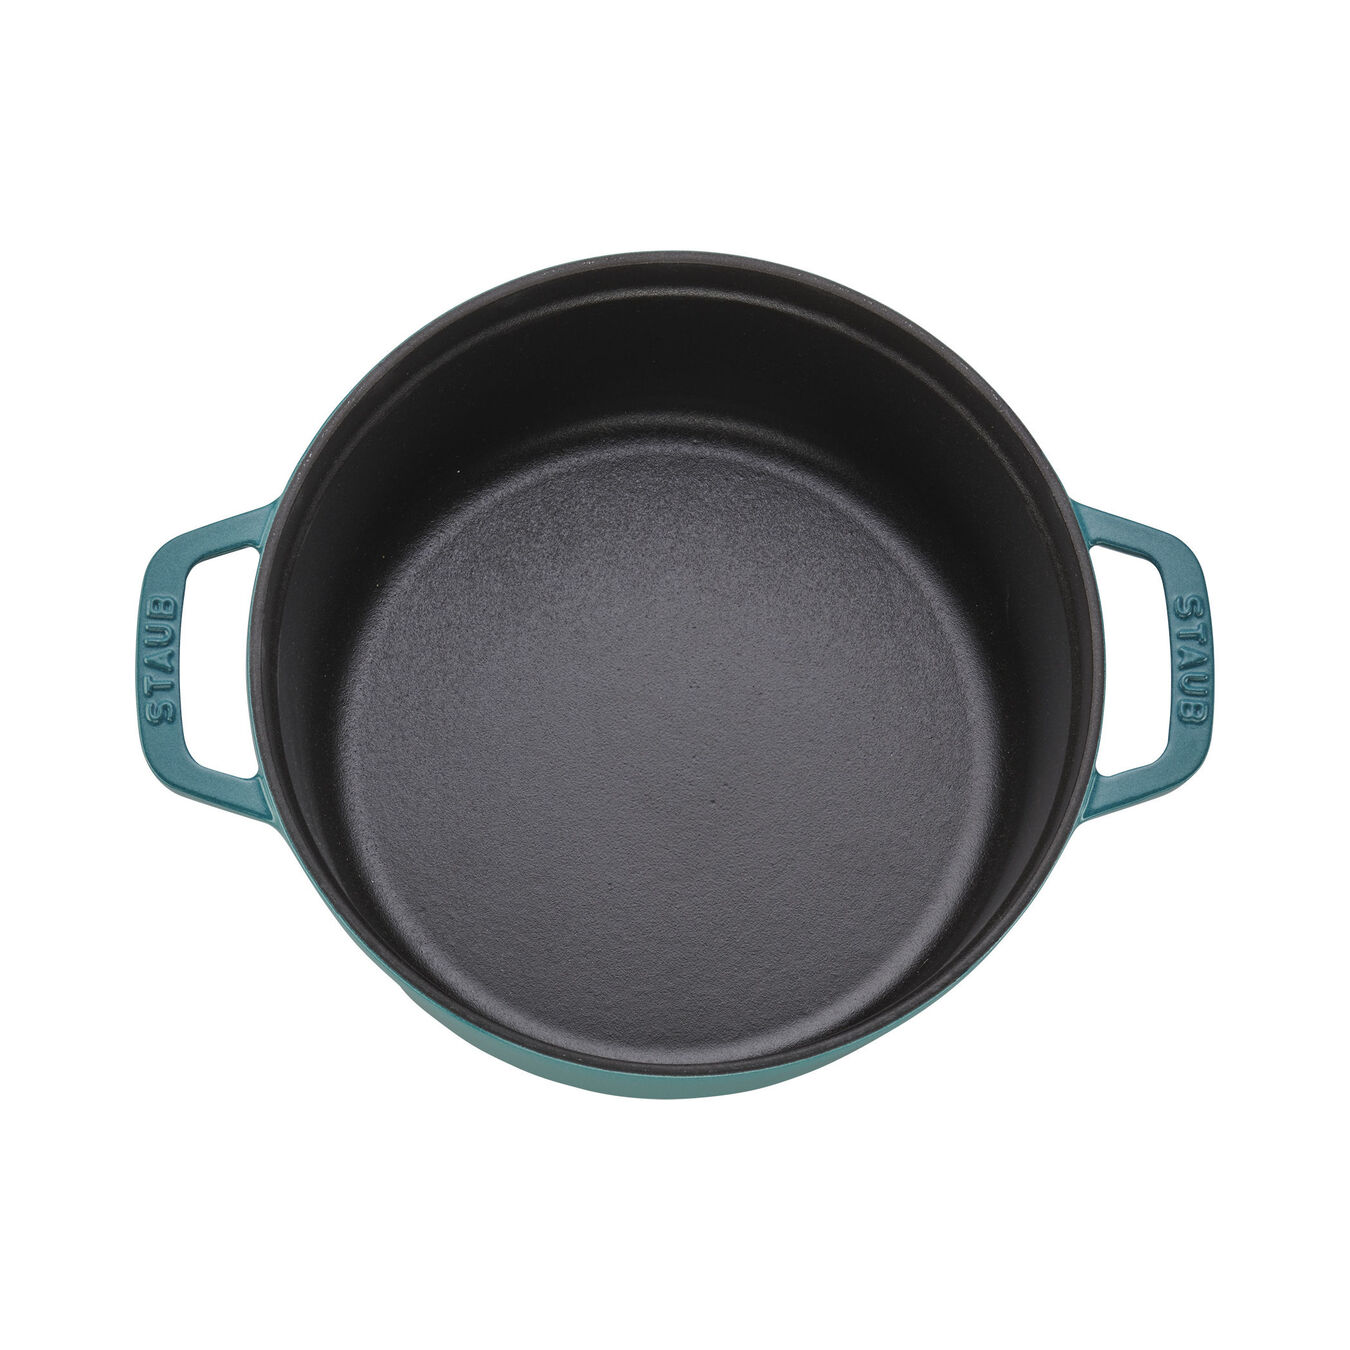 4-qt Round Cocotte - Turquoise,,large 3